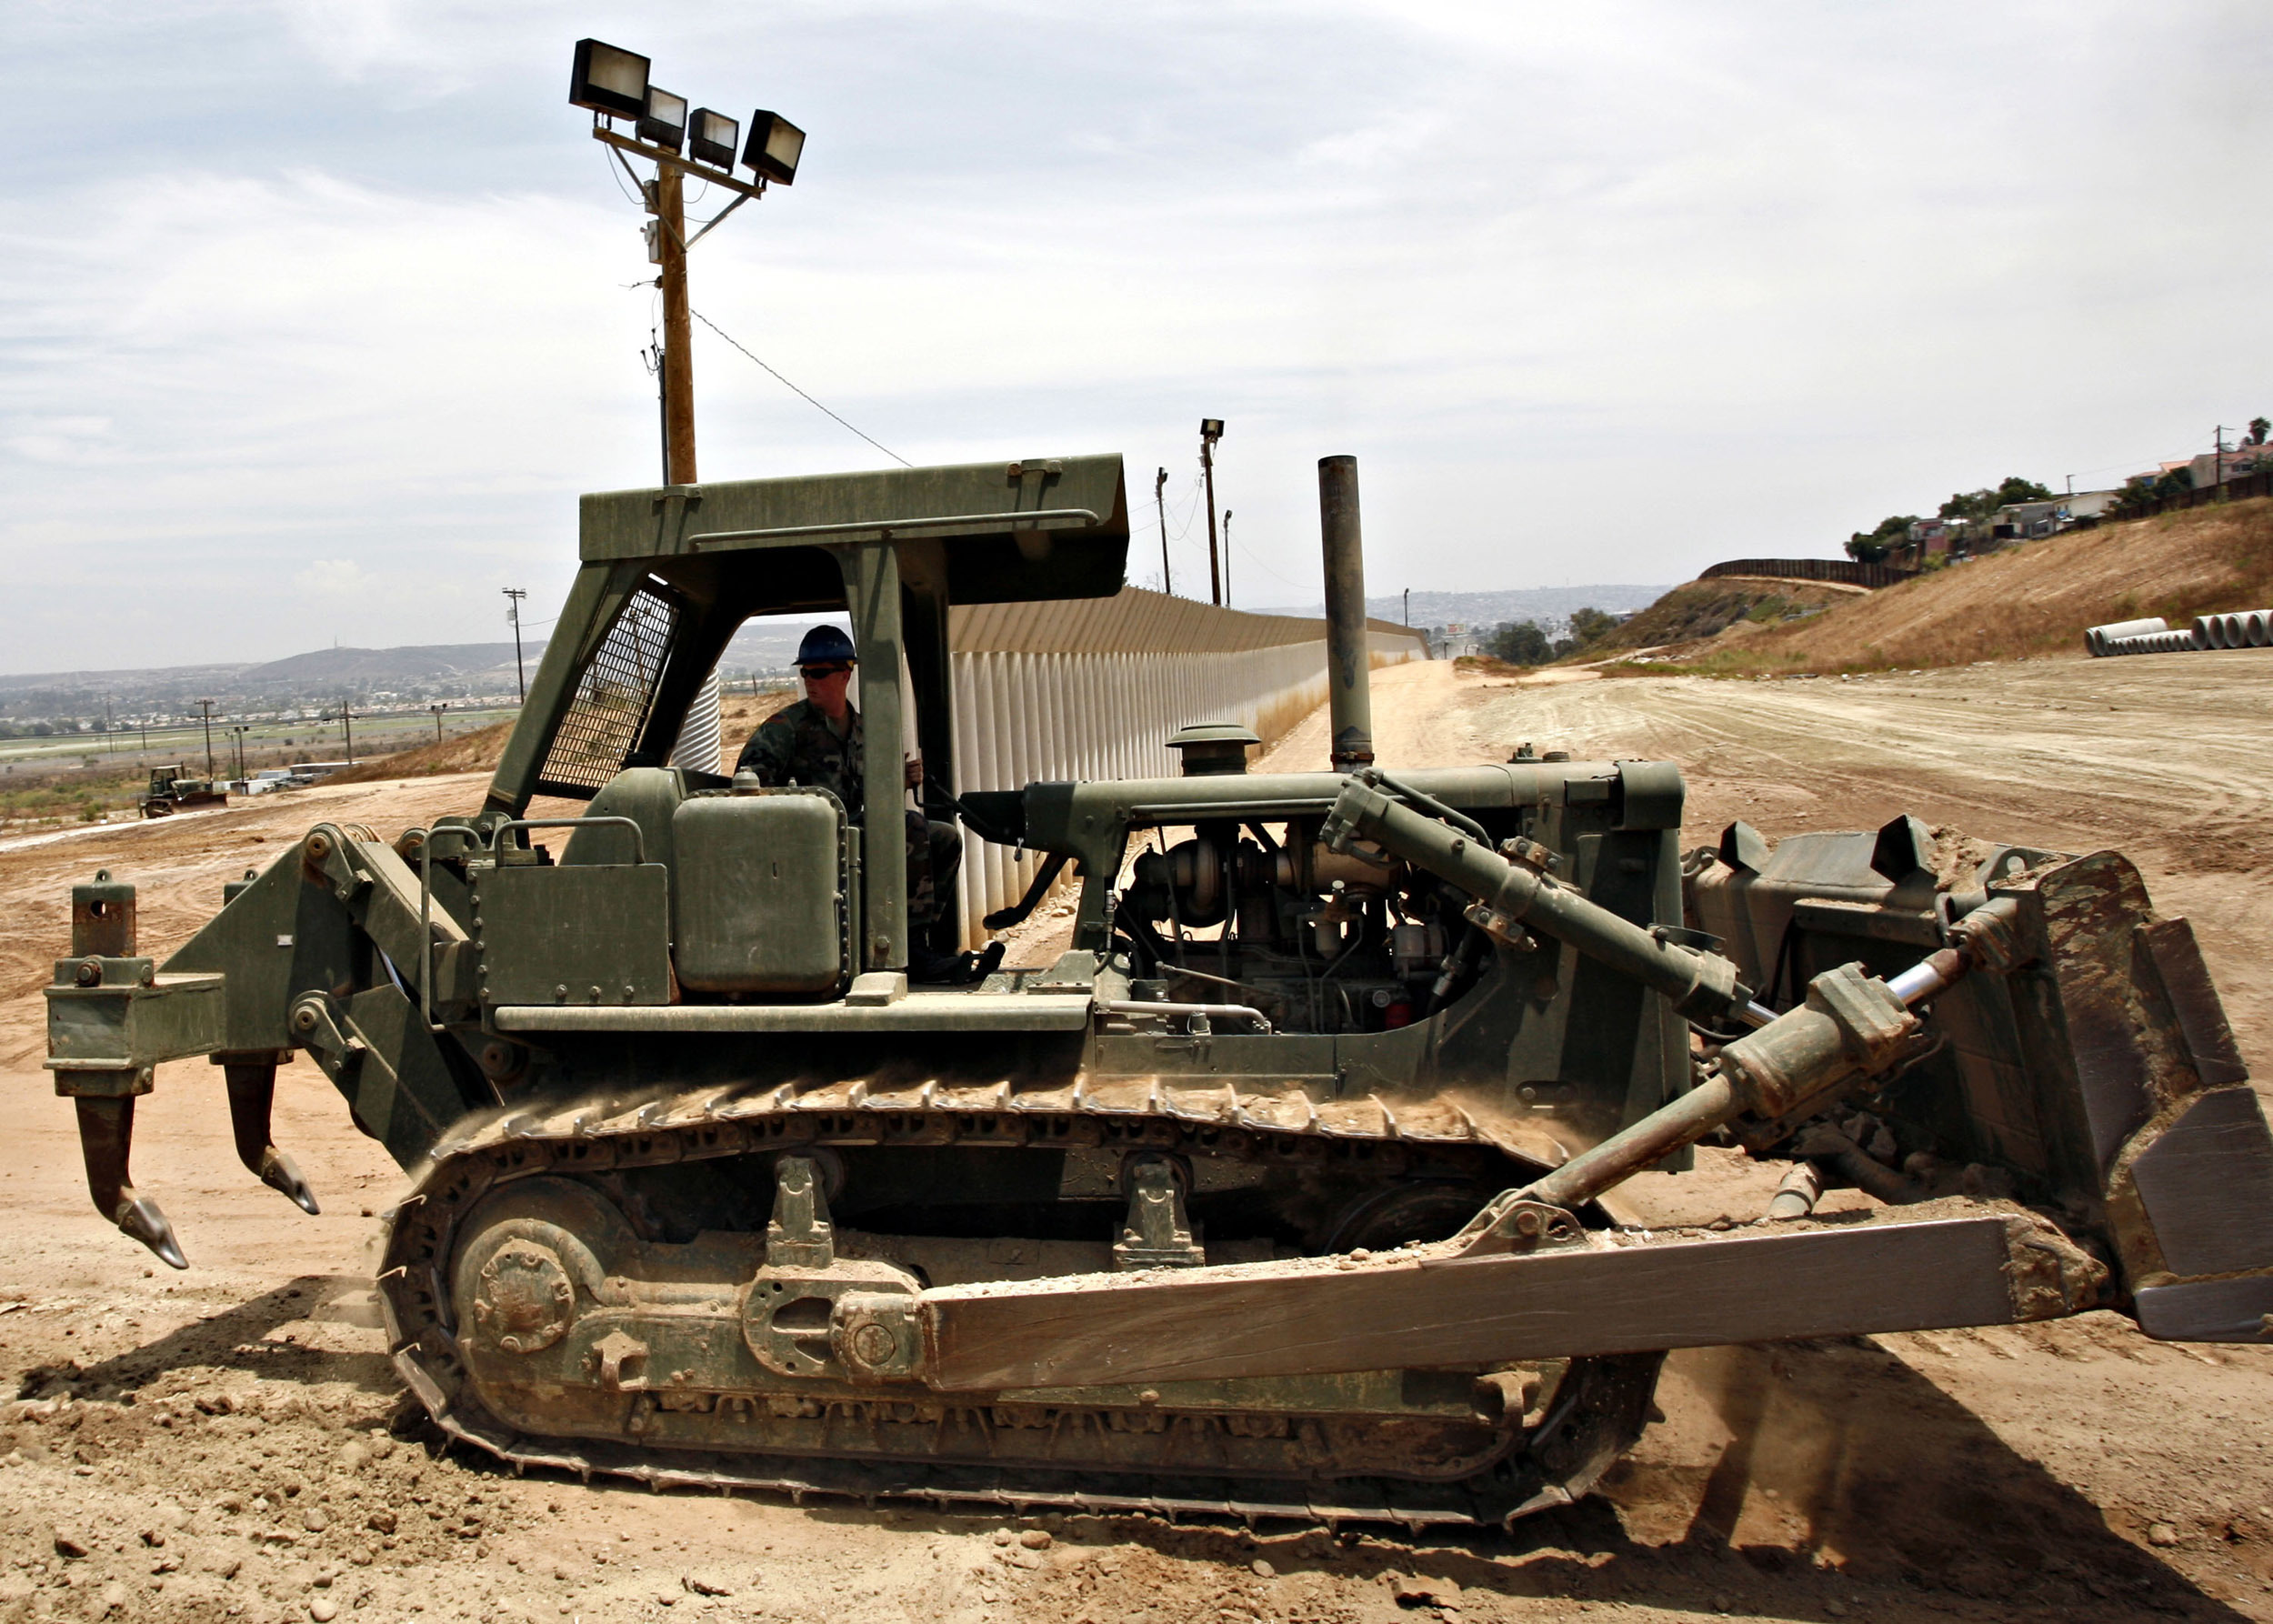 FILE - In this July 19, 2006, file photo, a California Army National Guardsman grades dirt with a tractor next to the second U.S.-Mexico border fence in San Diego. President Donald Trump said April 3, 2018, he wants to use the military to secure the U.S.-Mexico border until his promised border wall is built. The Department of Homeland Security and White House did not immediately respond to requests for comment. At the Pentagon, officials were struggling to answer questions about the plan, including rudimentary details on whether it would involve National Guard members, as similar programs in the past have done. But officials appeared to be considering a model similar to a 2006 operation in which former President George W. Bush deployed National Guard troops to the southern border in an effort to increase security and surveillance.(AP Photo/Denis Poroy, File)